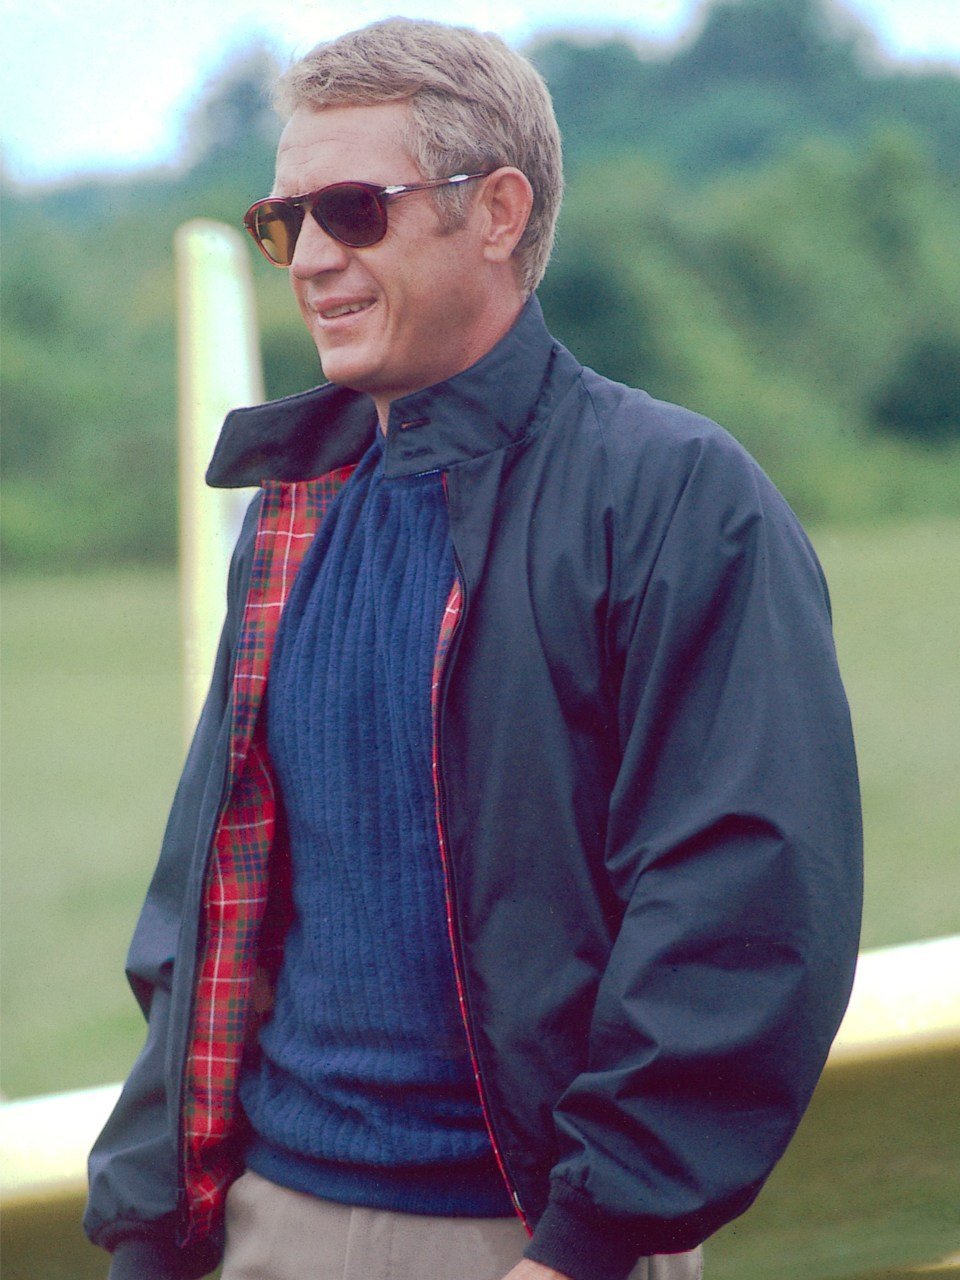 Steve McQueen Persol and jacket